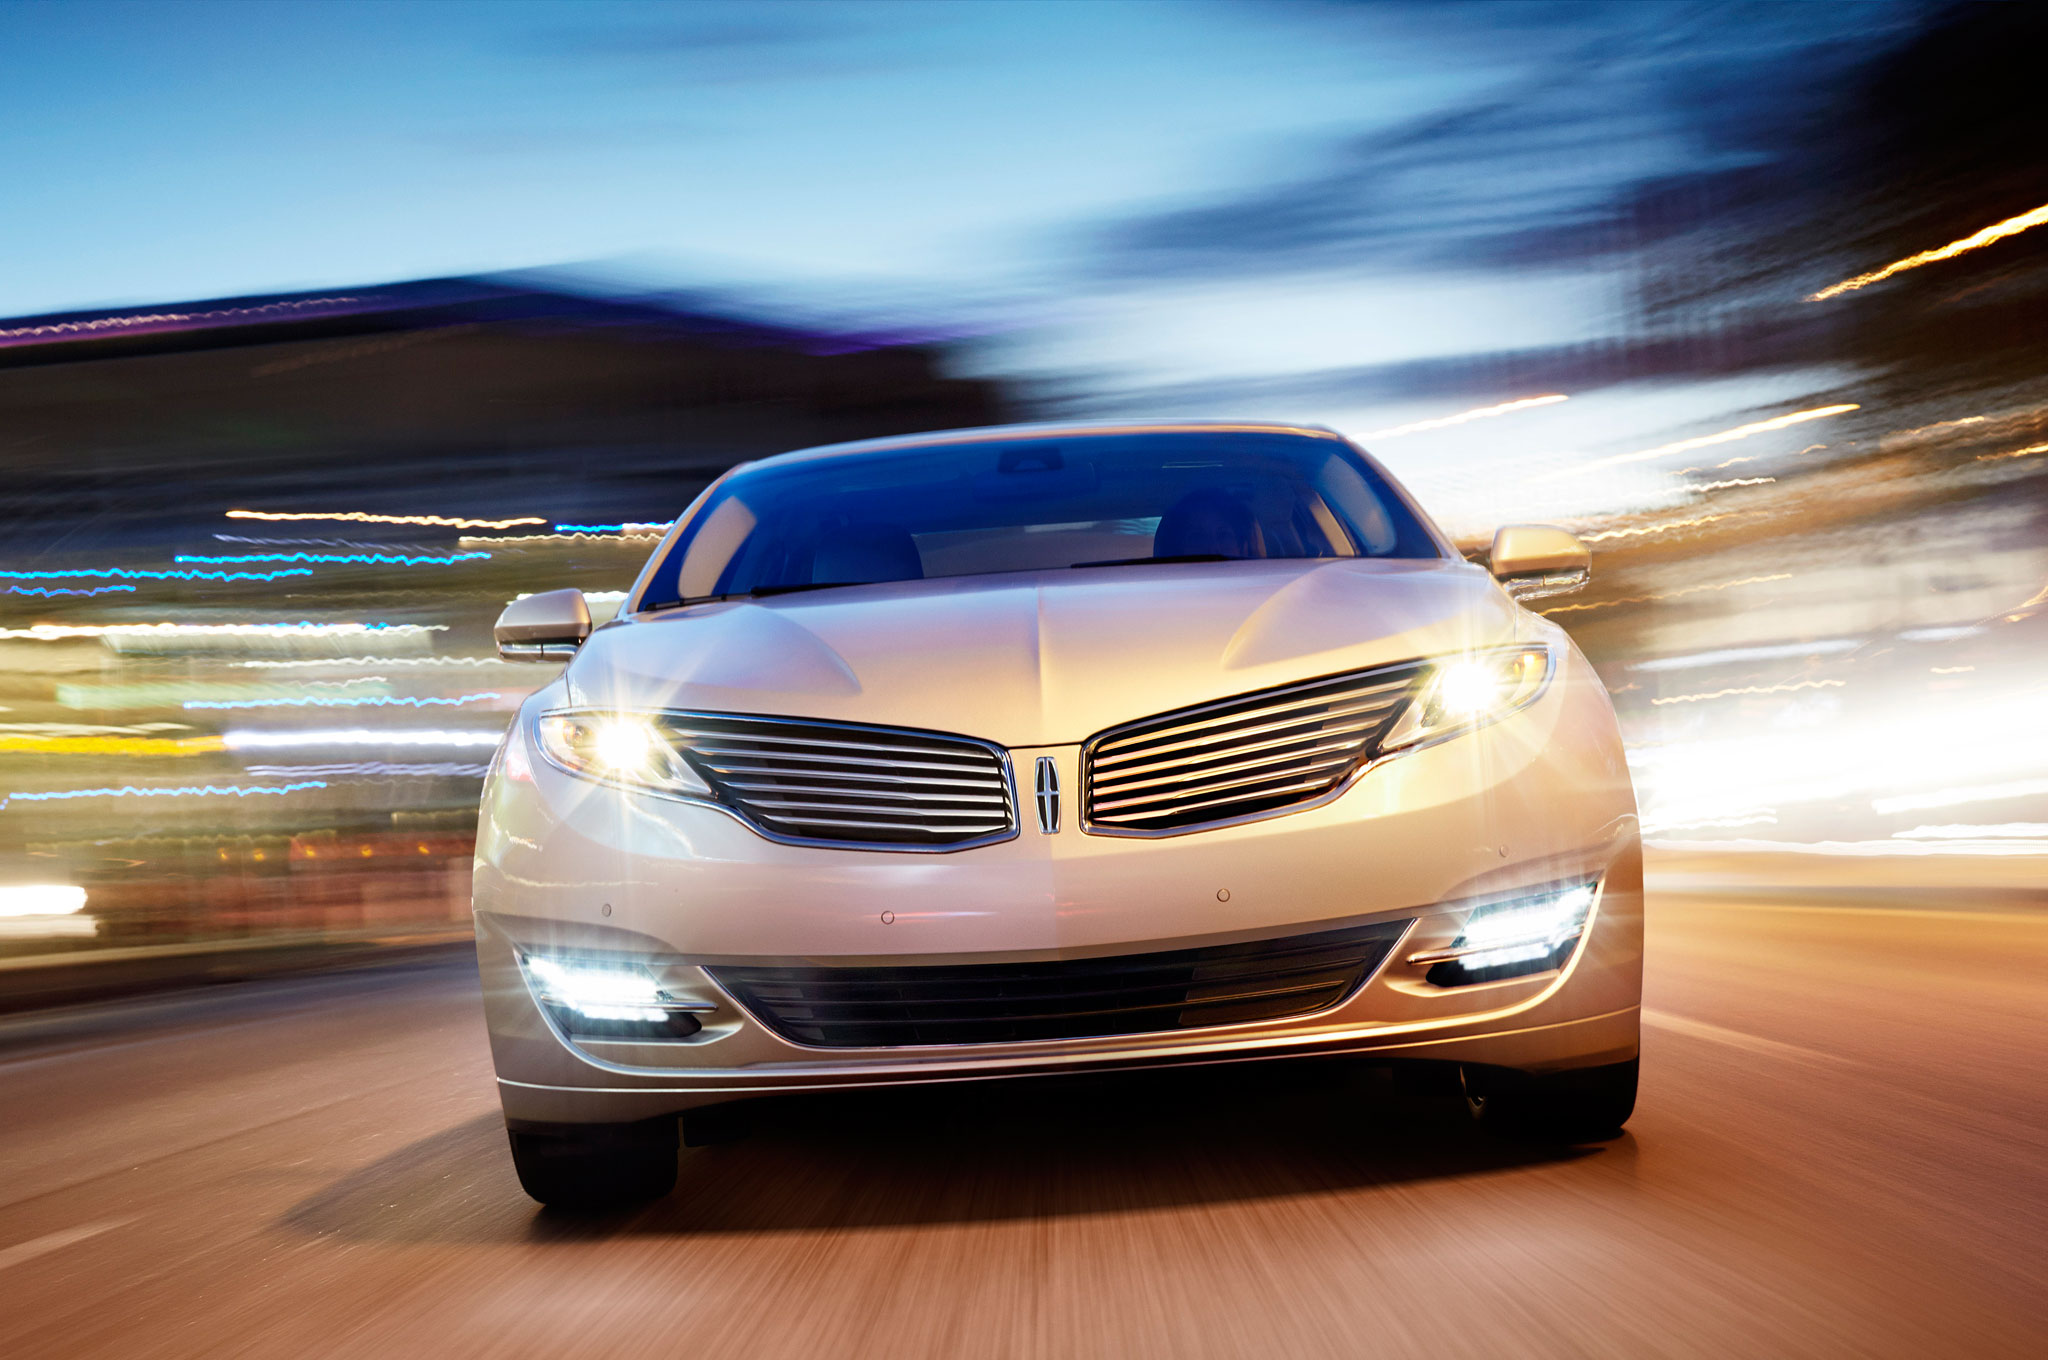 2013 Lincoln MKZ Hybrid Front View1